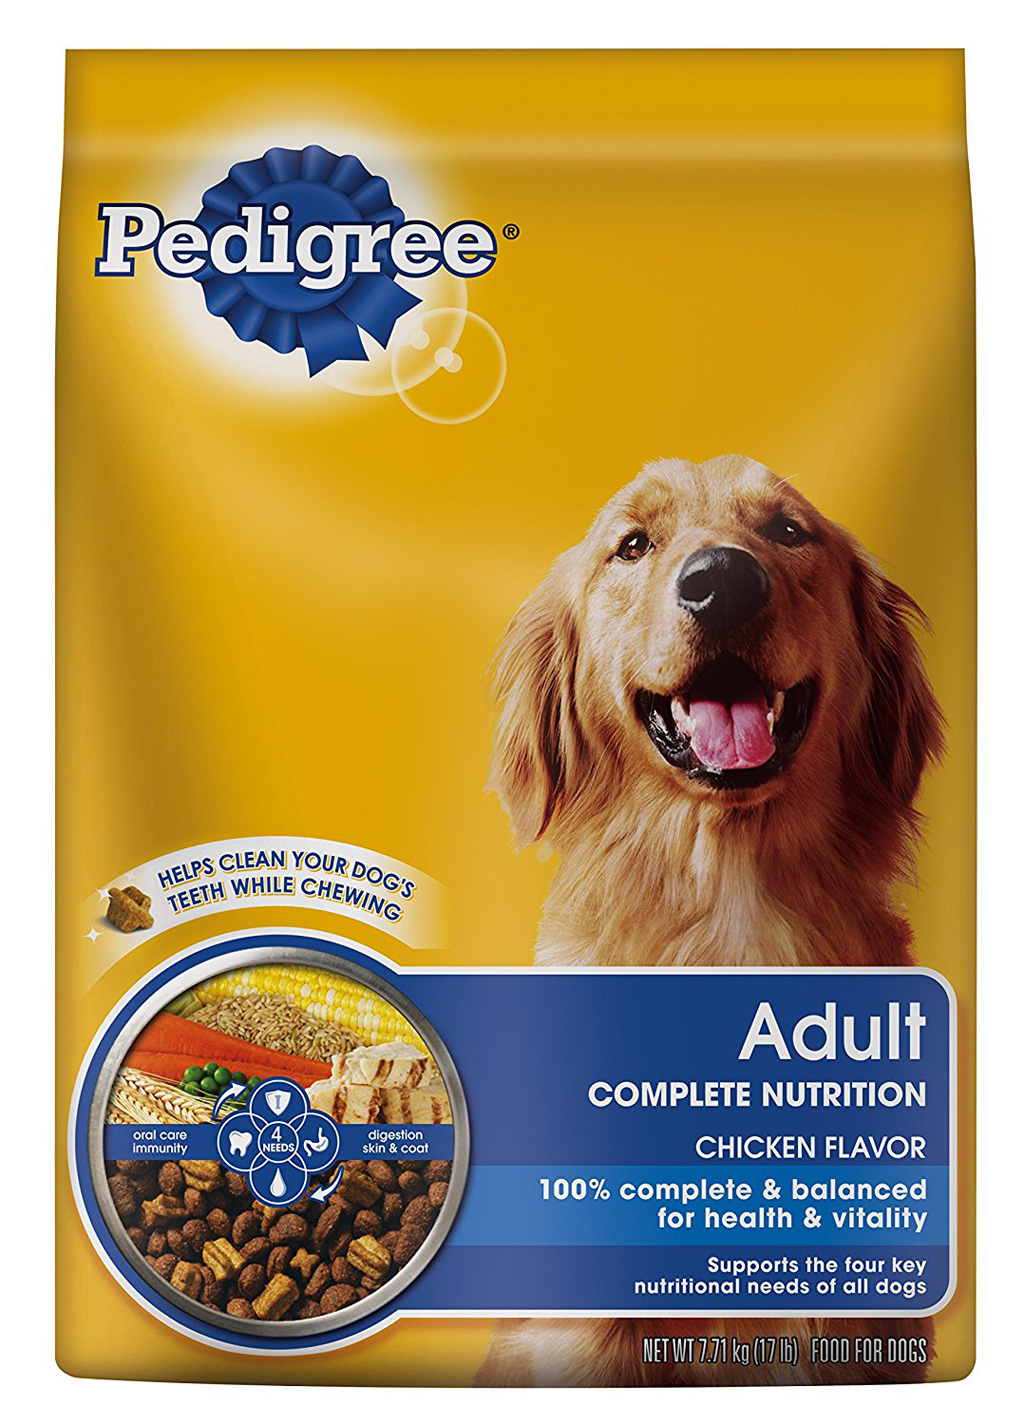 Is Pedigree only enough for dogs nutrition